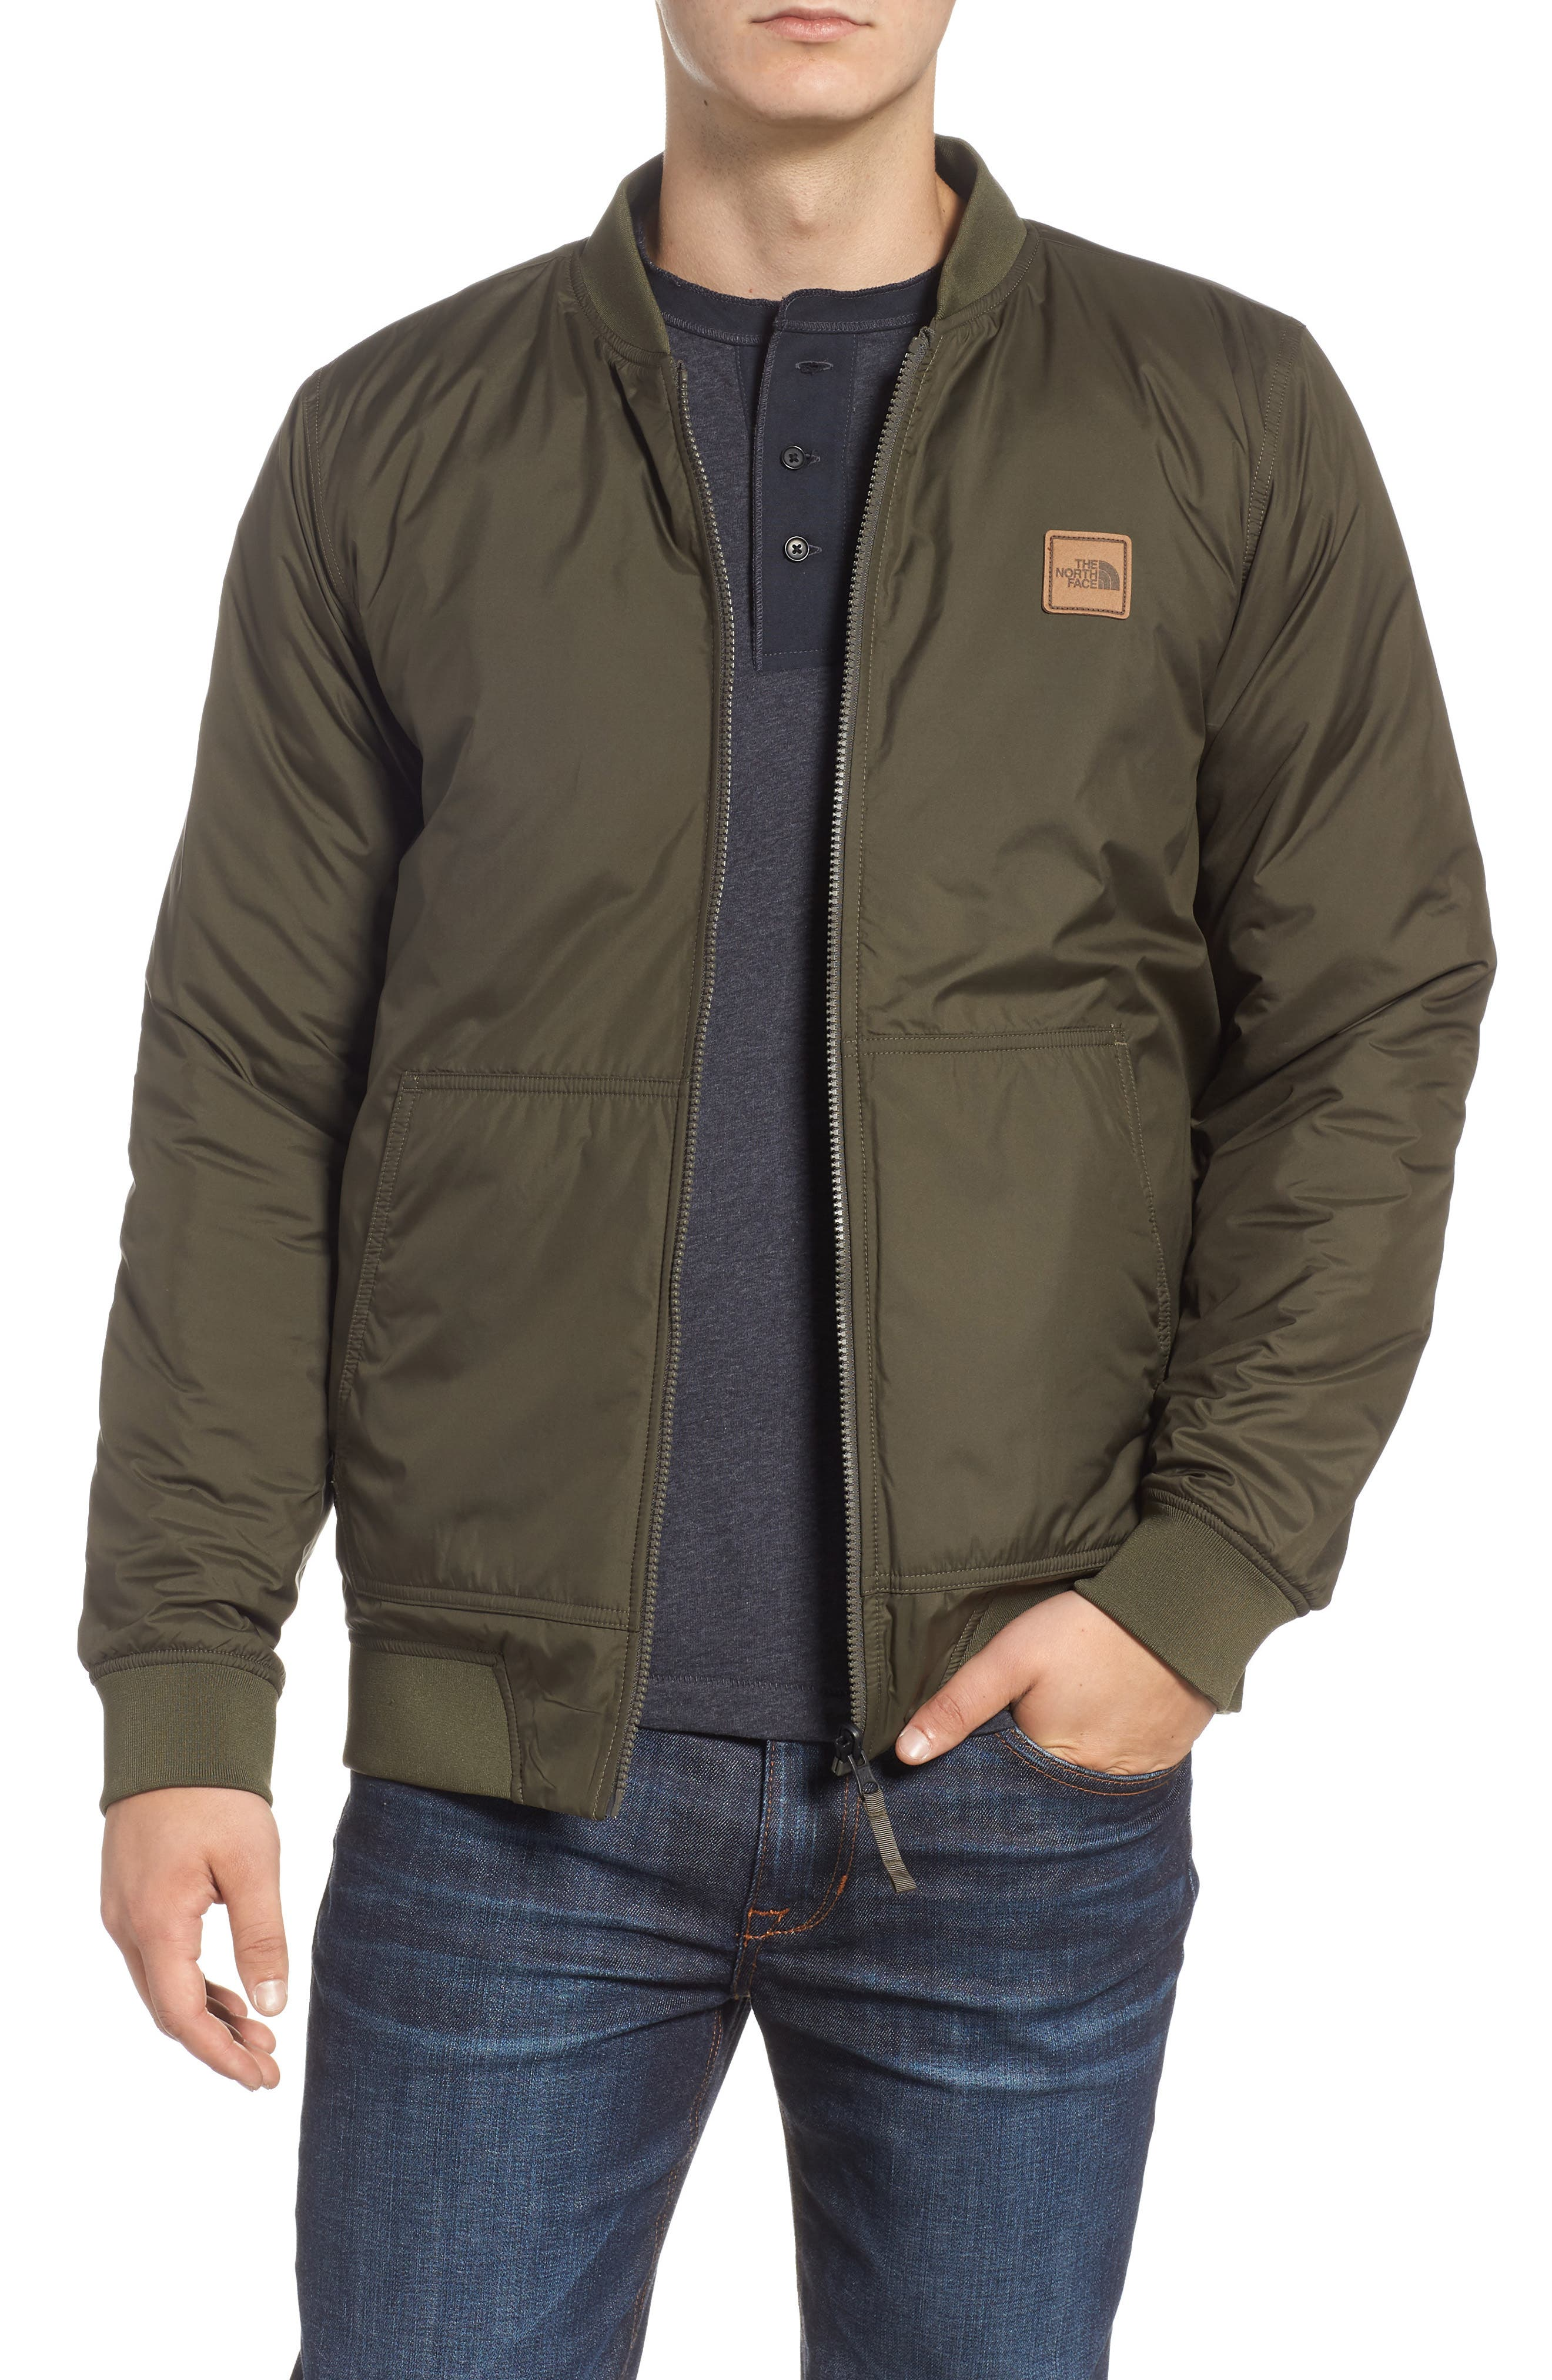 THE NORTH FACE,                             Jester Reversible Bomber Jacket,                             Alternate thumbnail 2, color,                             NEW TAUPE GREEN